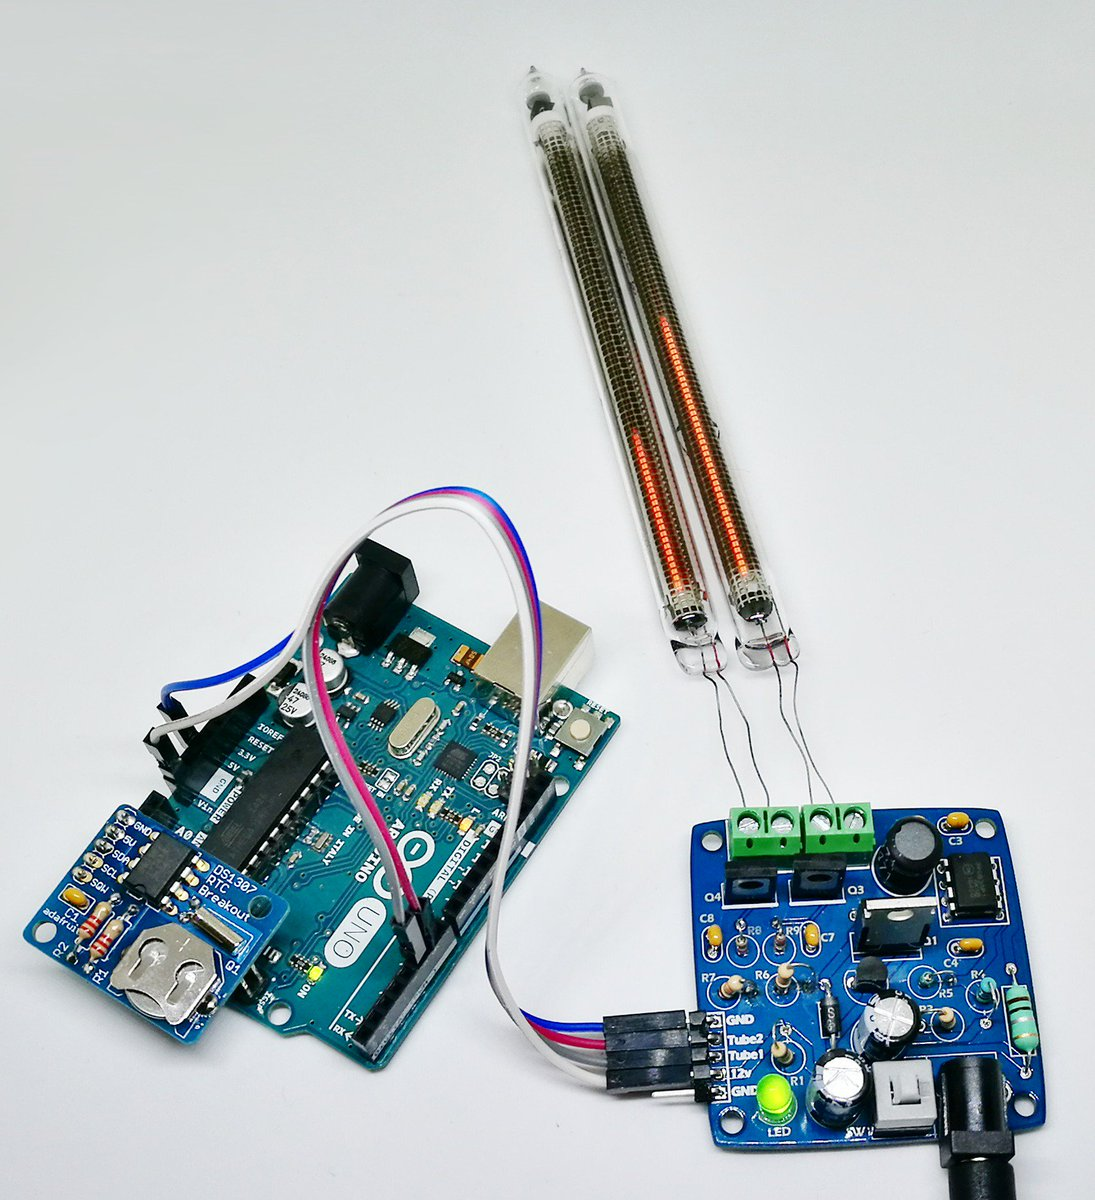 Robin Sterling On Twitter New Ks Project Is Taking Form In 9 Nixie Tube Clock Circuit Bargraph Driver Controlled By Pwm Turn Anything Into A Indicator